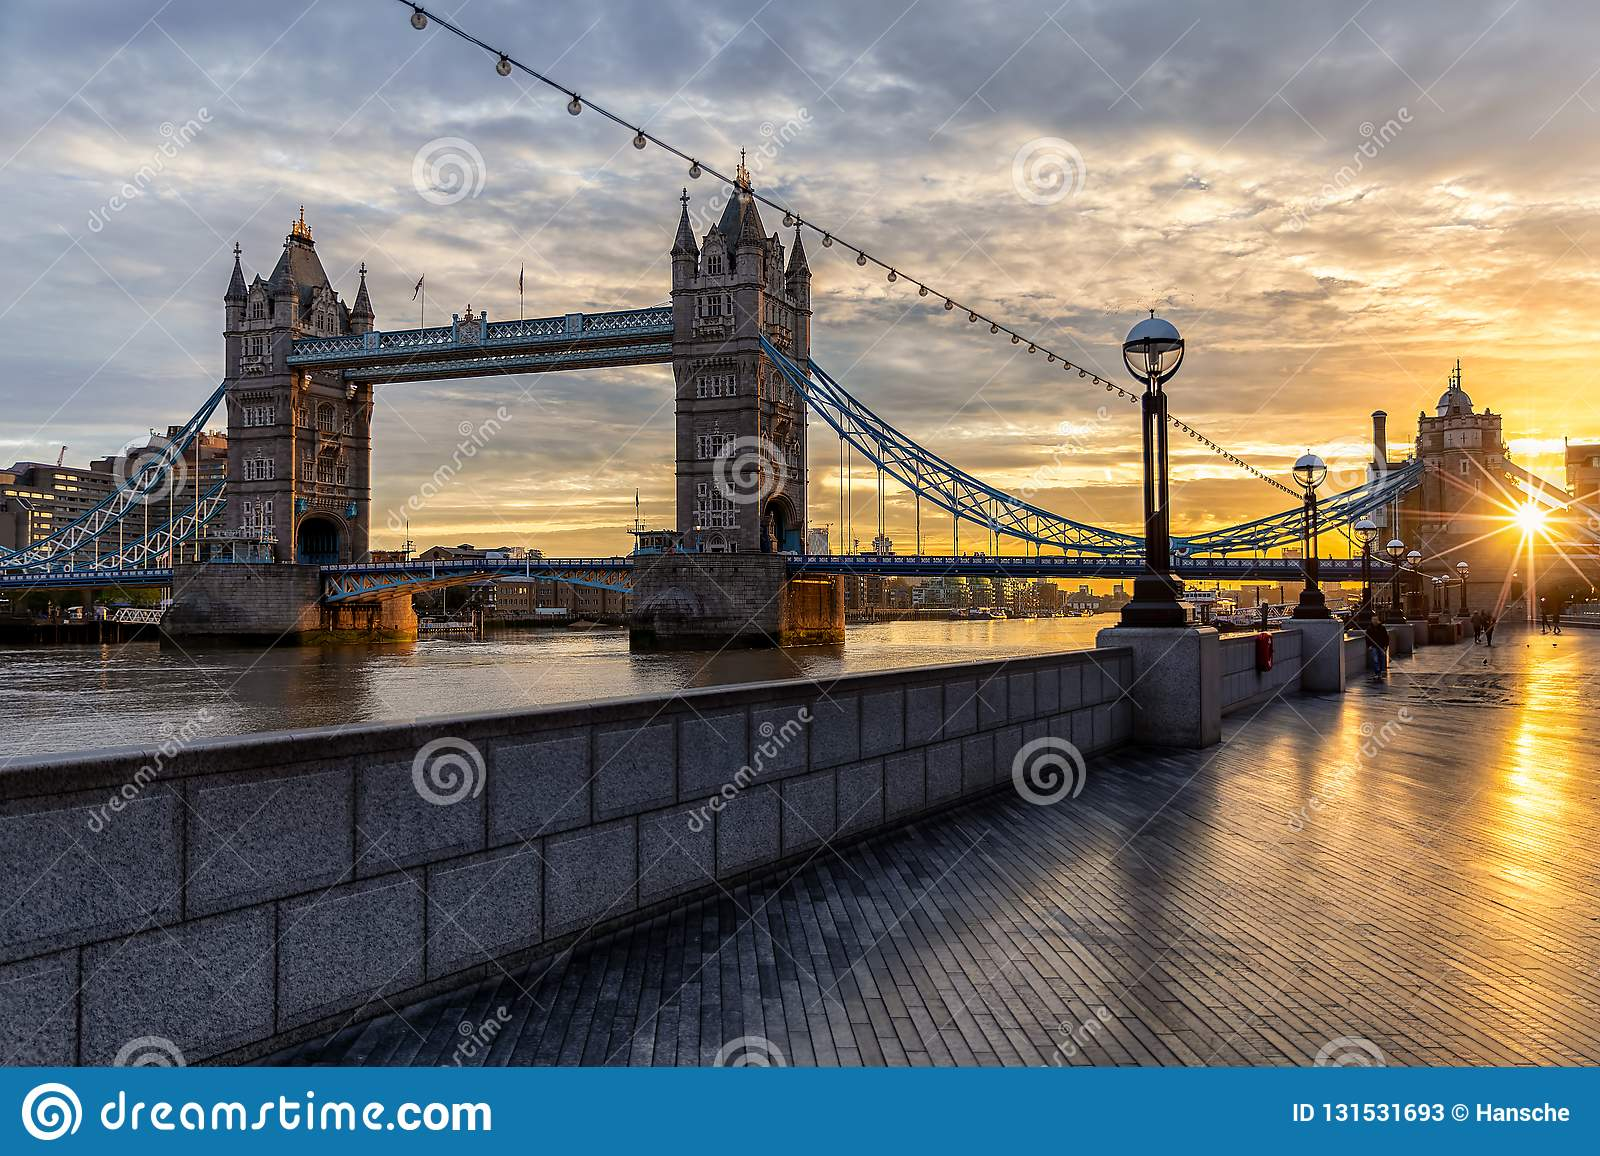 The iconic Tower Bridge in London